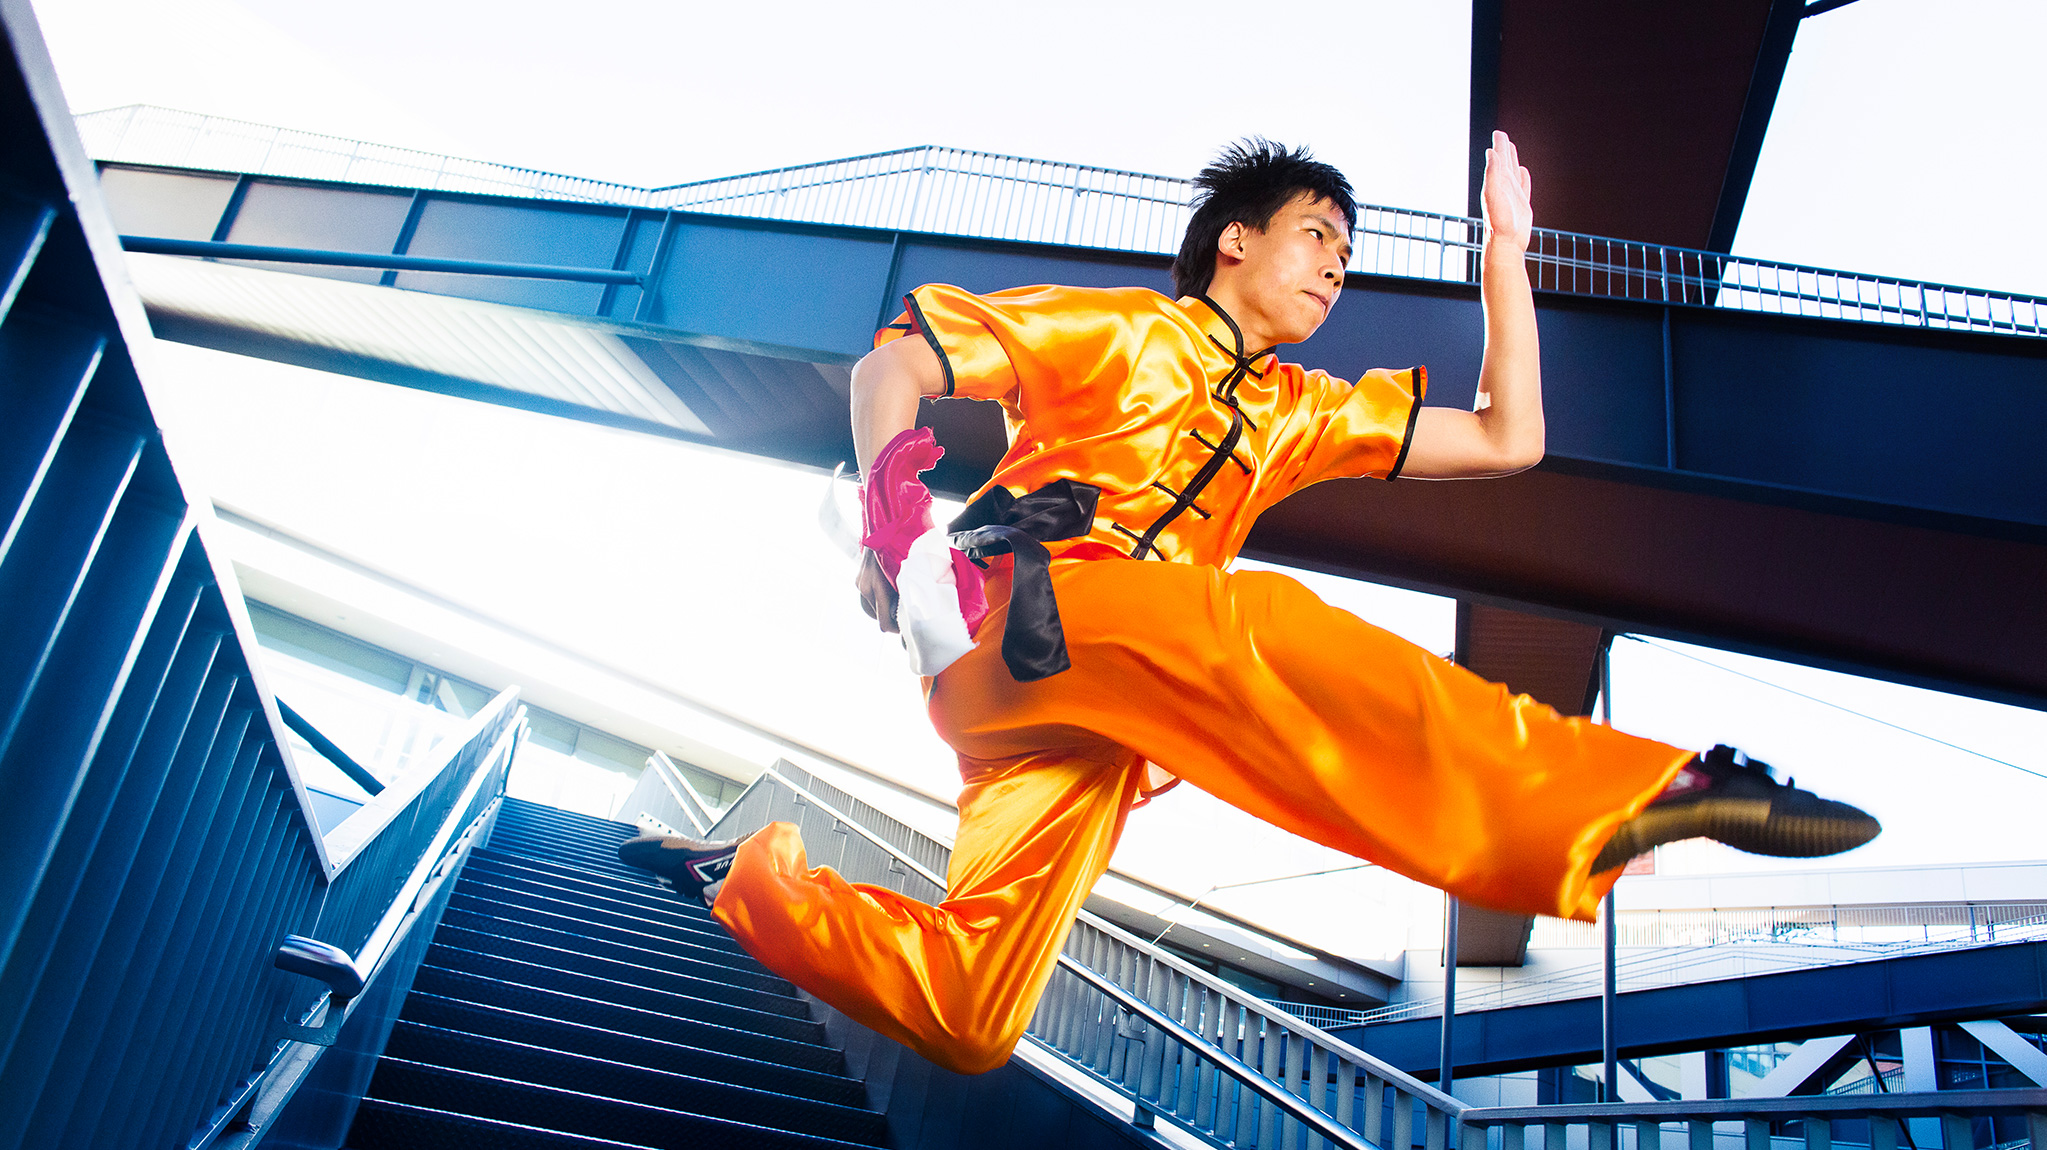 A Wushu team member demonstrates a jumping move.